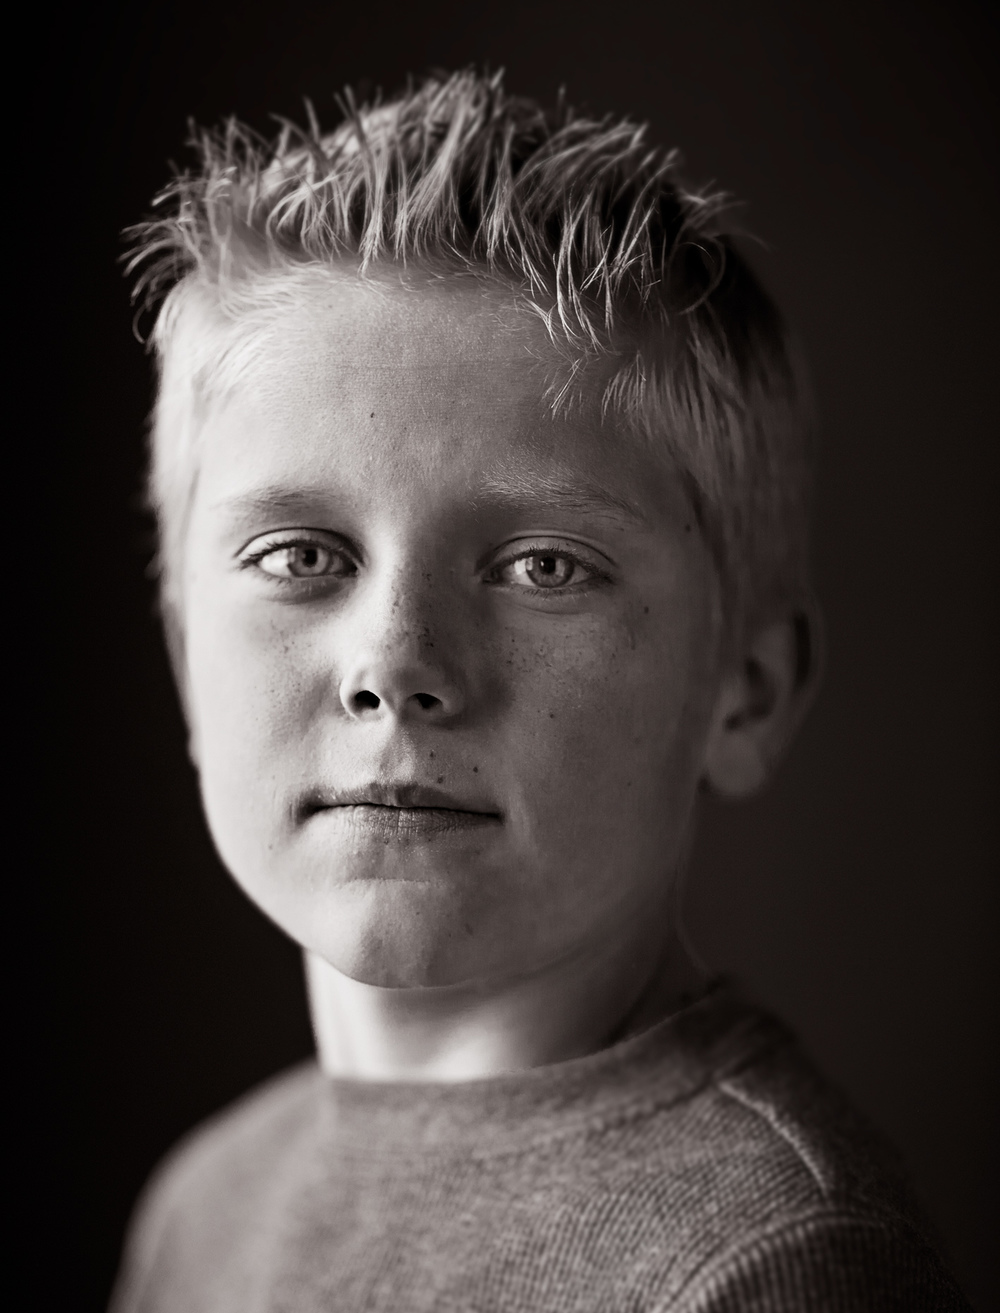 Portrait Photography Derek Israelsen Kid Headshot